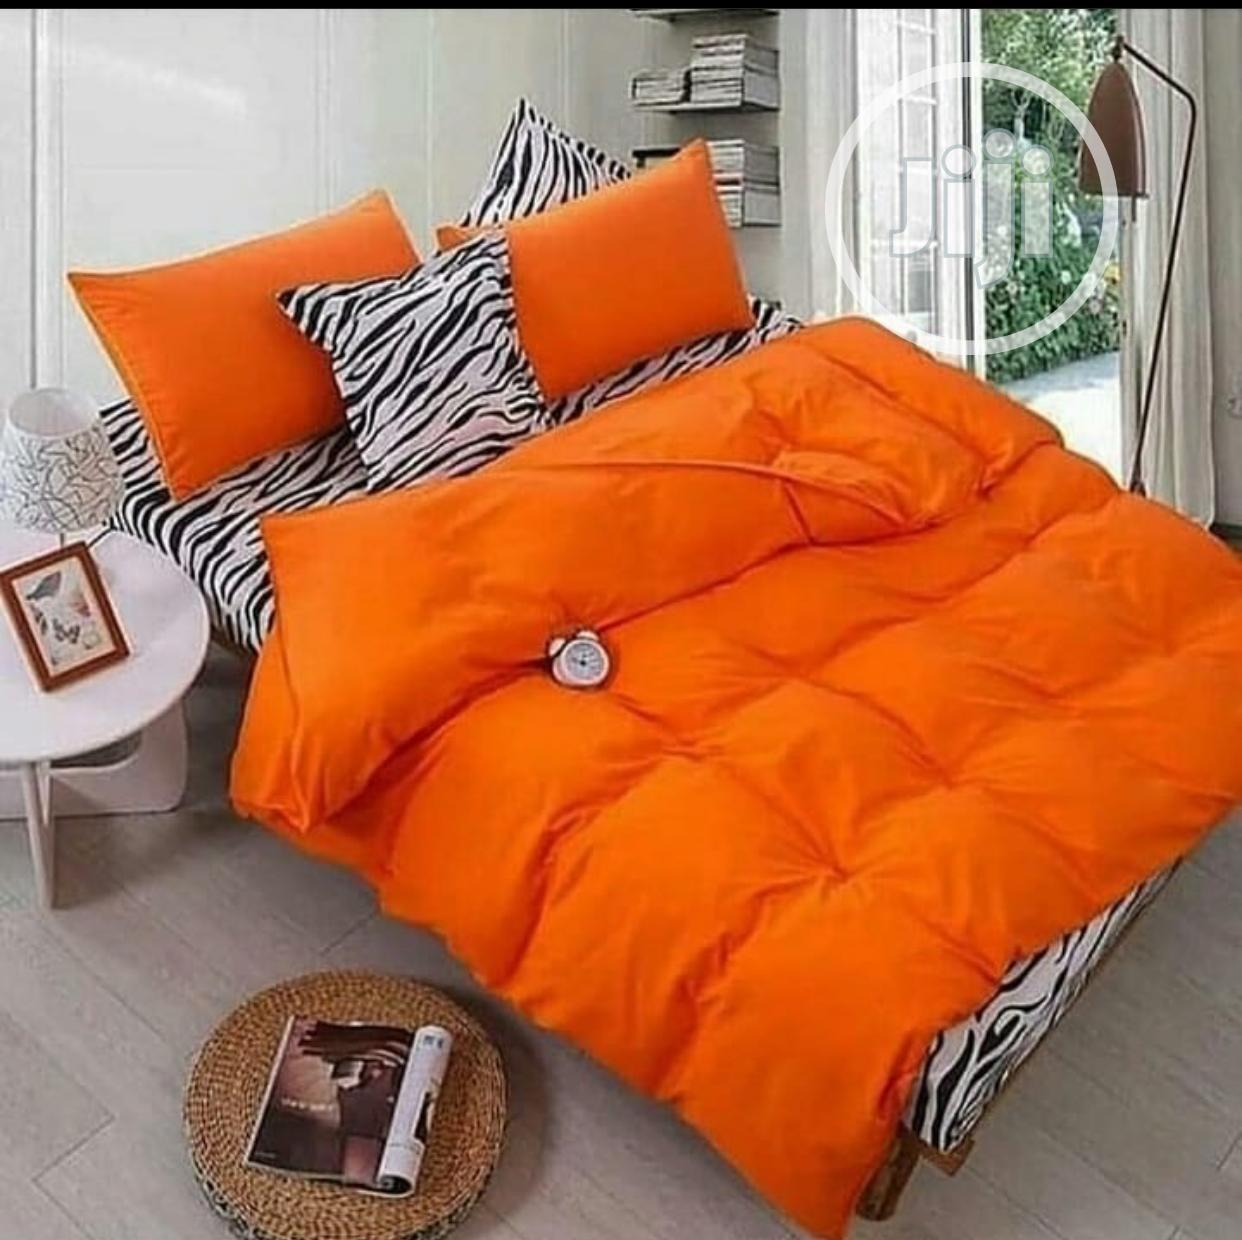 Bedsheets With Duvet For Sale ( 4*6, 6*7, 7*7)